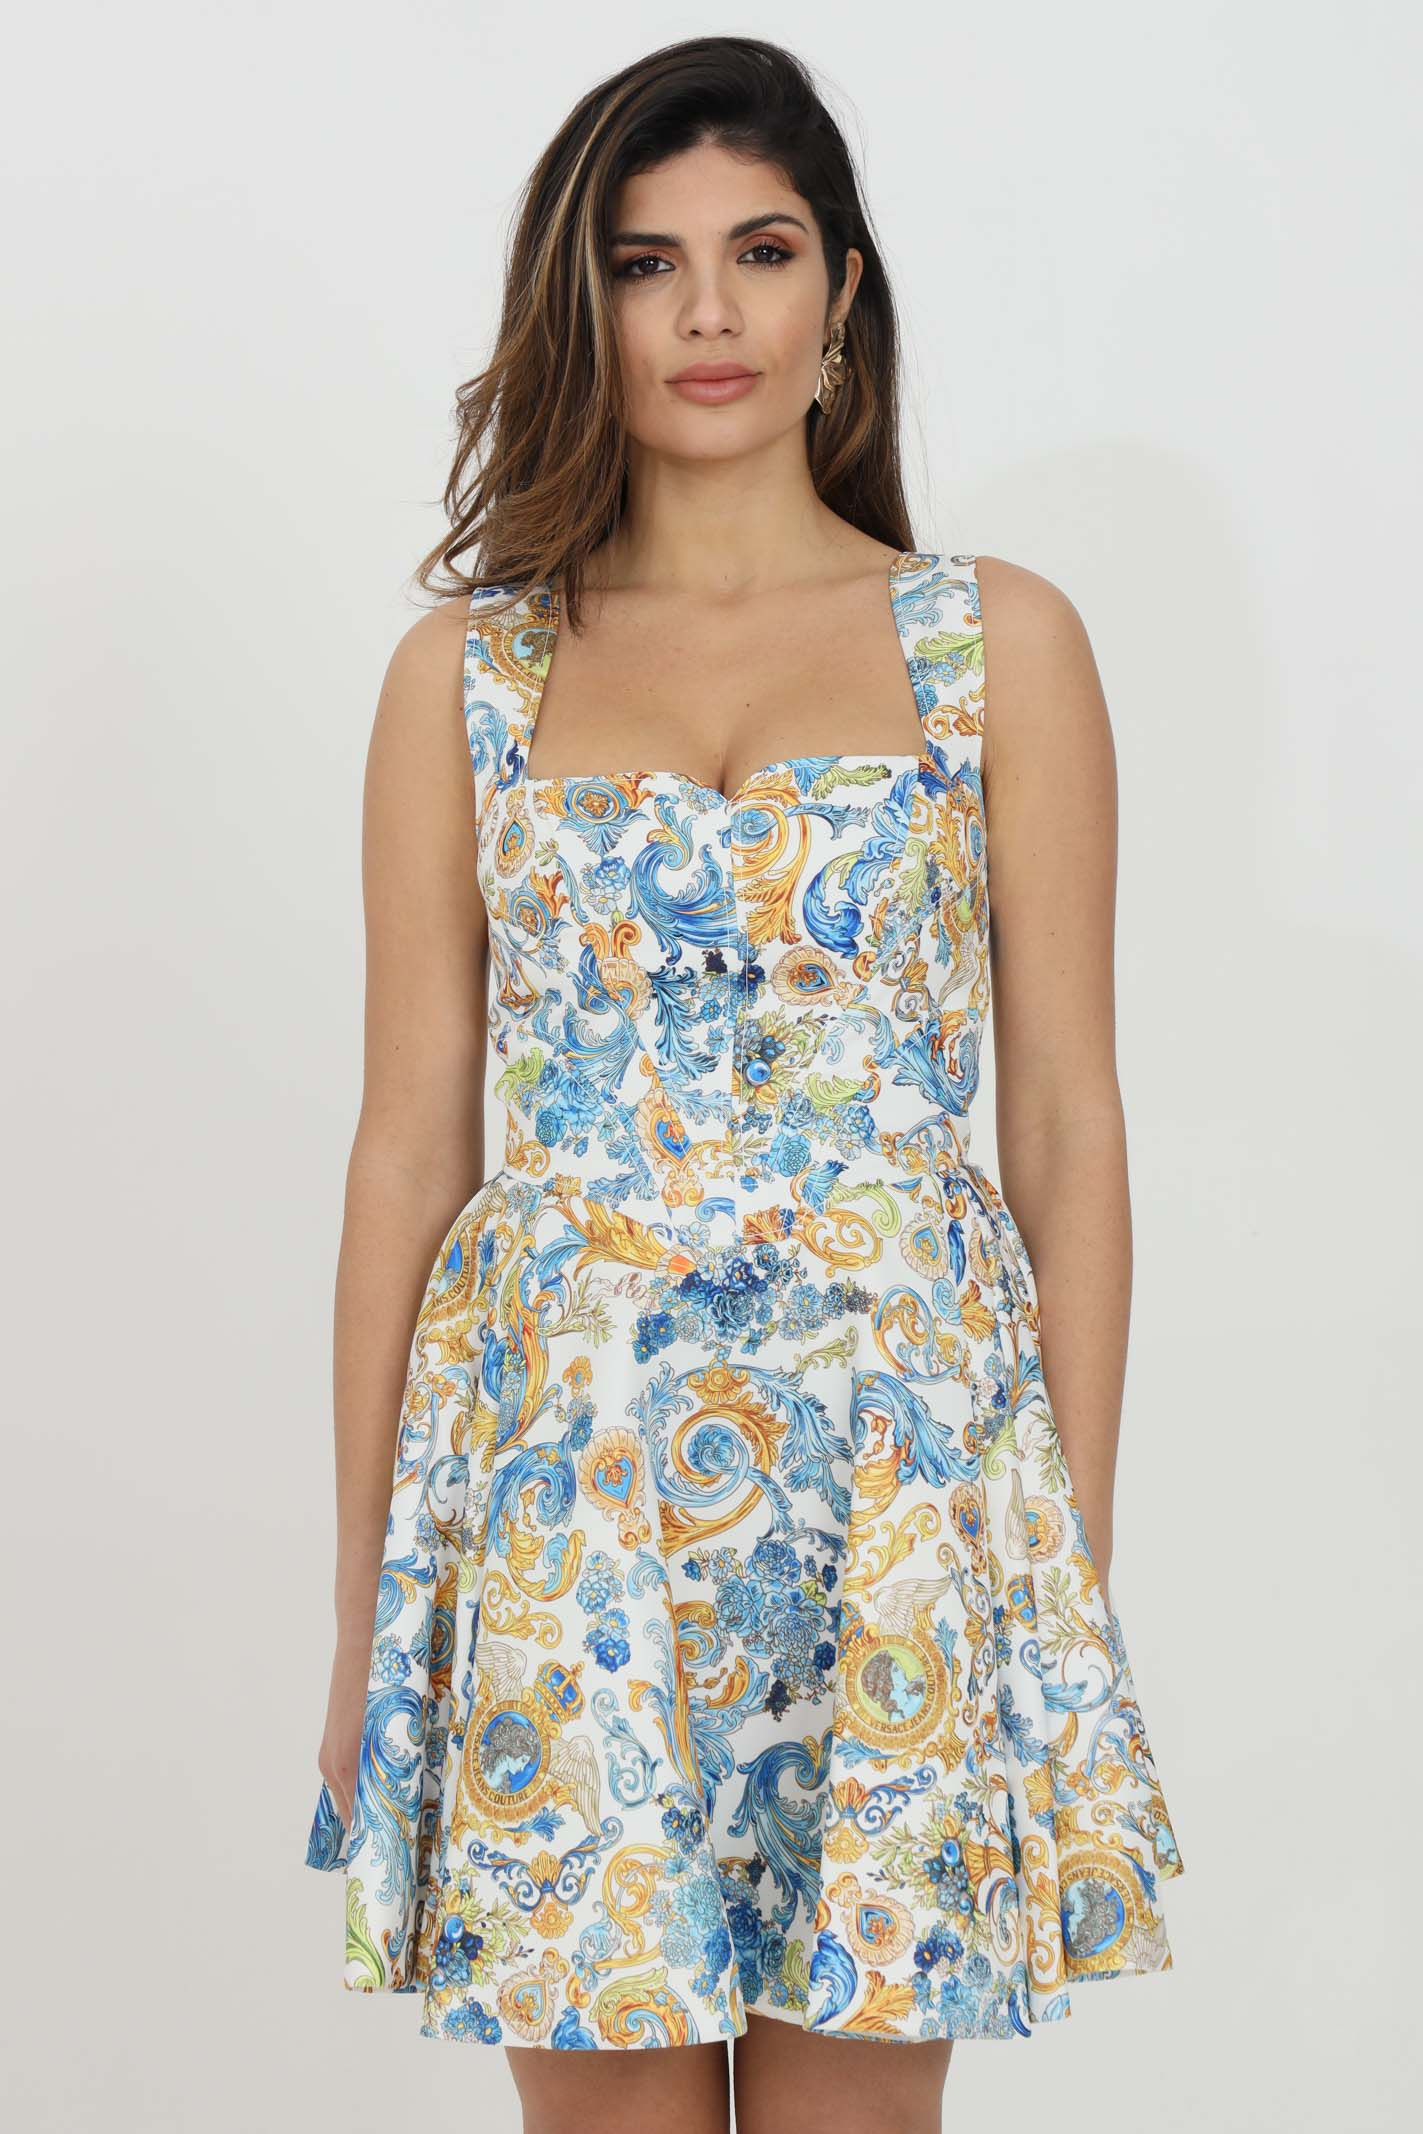 VERSACE JEANS COUTURE | Dress | D2HWA425S0098003